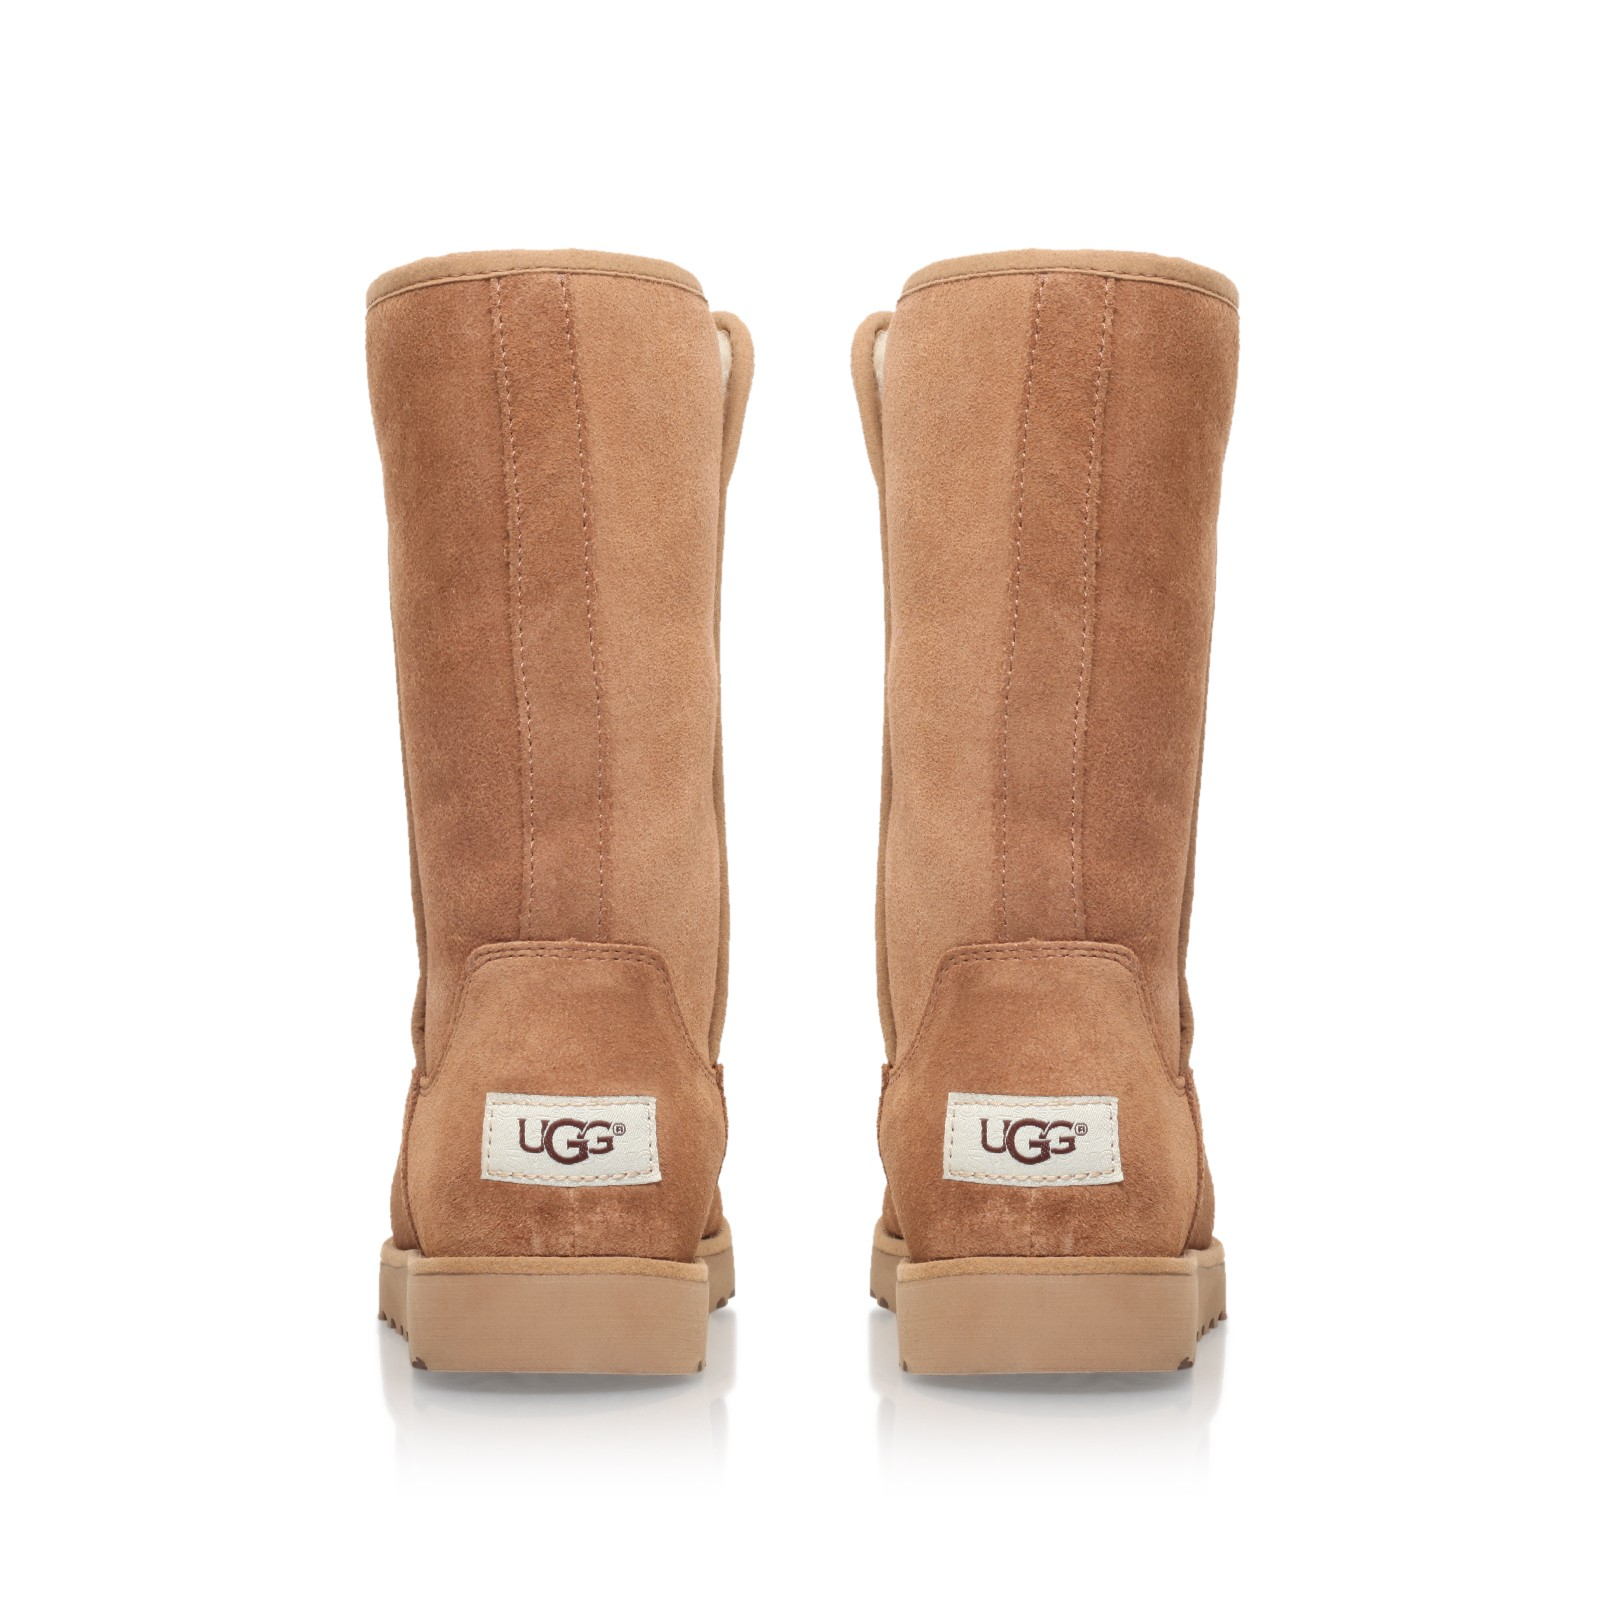 where can you buy ugg boots in the uk